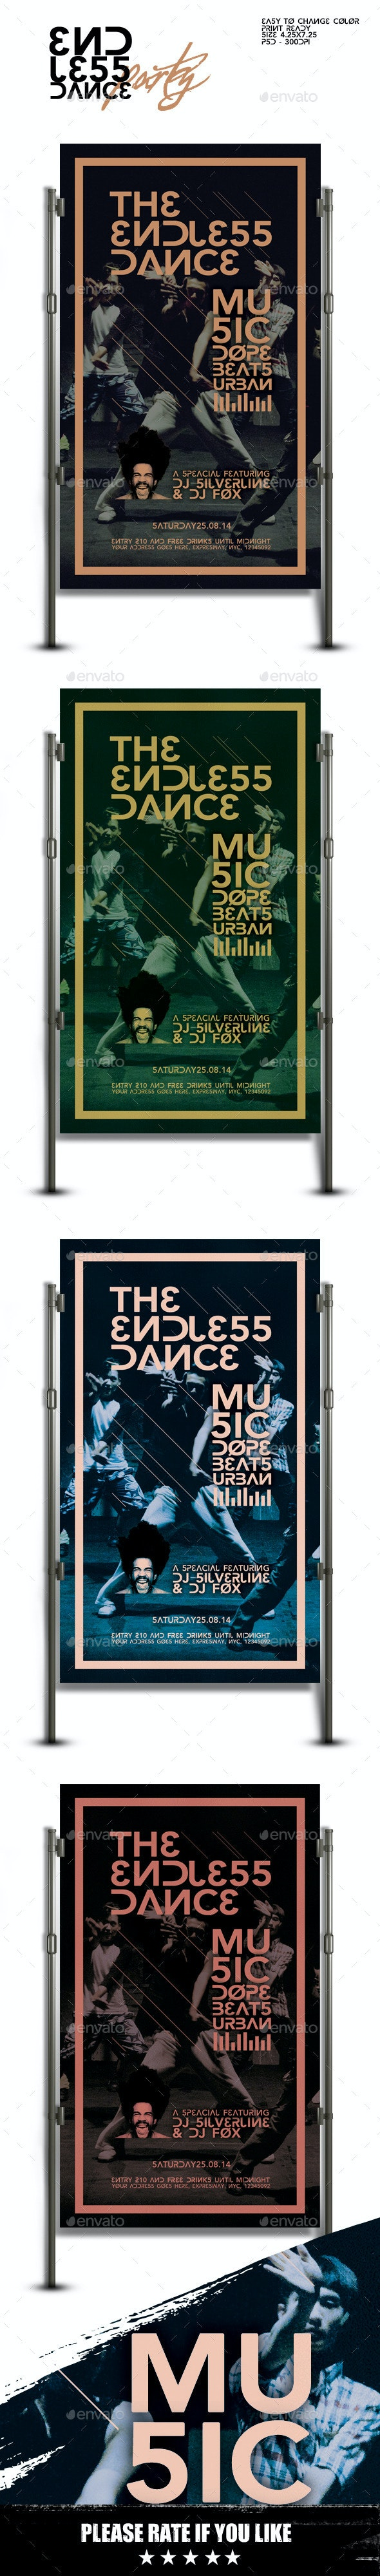 Endless Dance Party Flyer Template - Clubs & Parties Events